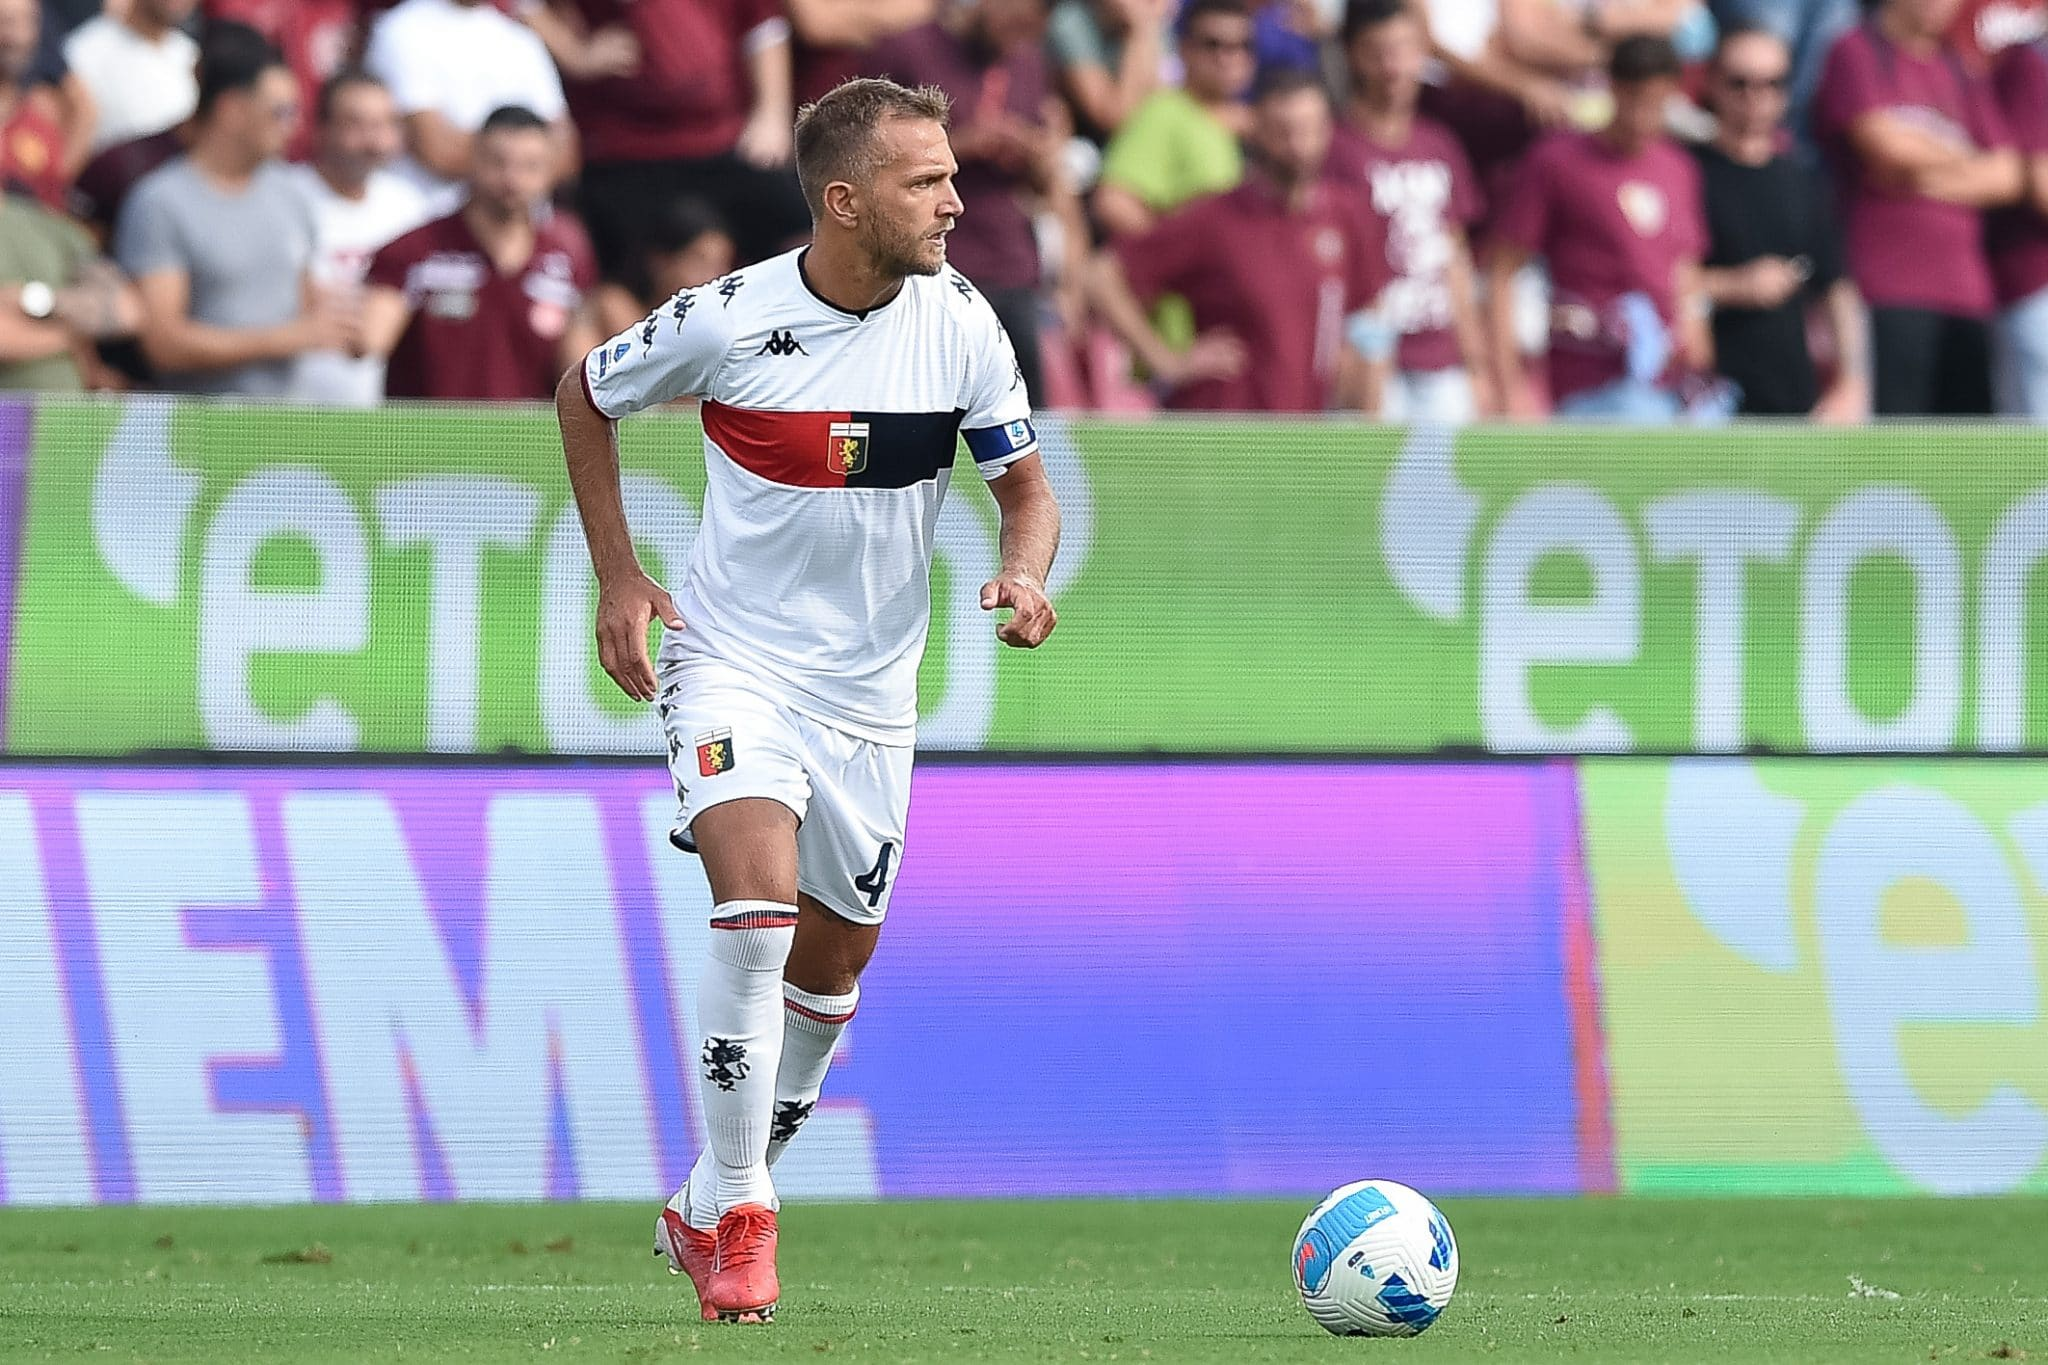 Domenico Criscito of Genoa CFC during the Serie A match between US Salernitana 1919 and  Genoa CFC at Stadio Arechi, Salerno, Italy on 2 October 2021.  (Photo by Giuseppe Maffia/NurPhoto via Getty Images)